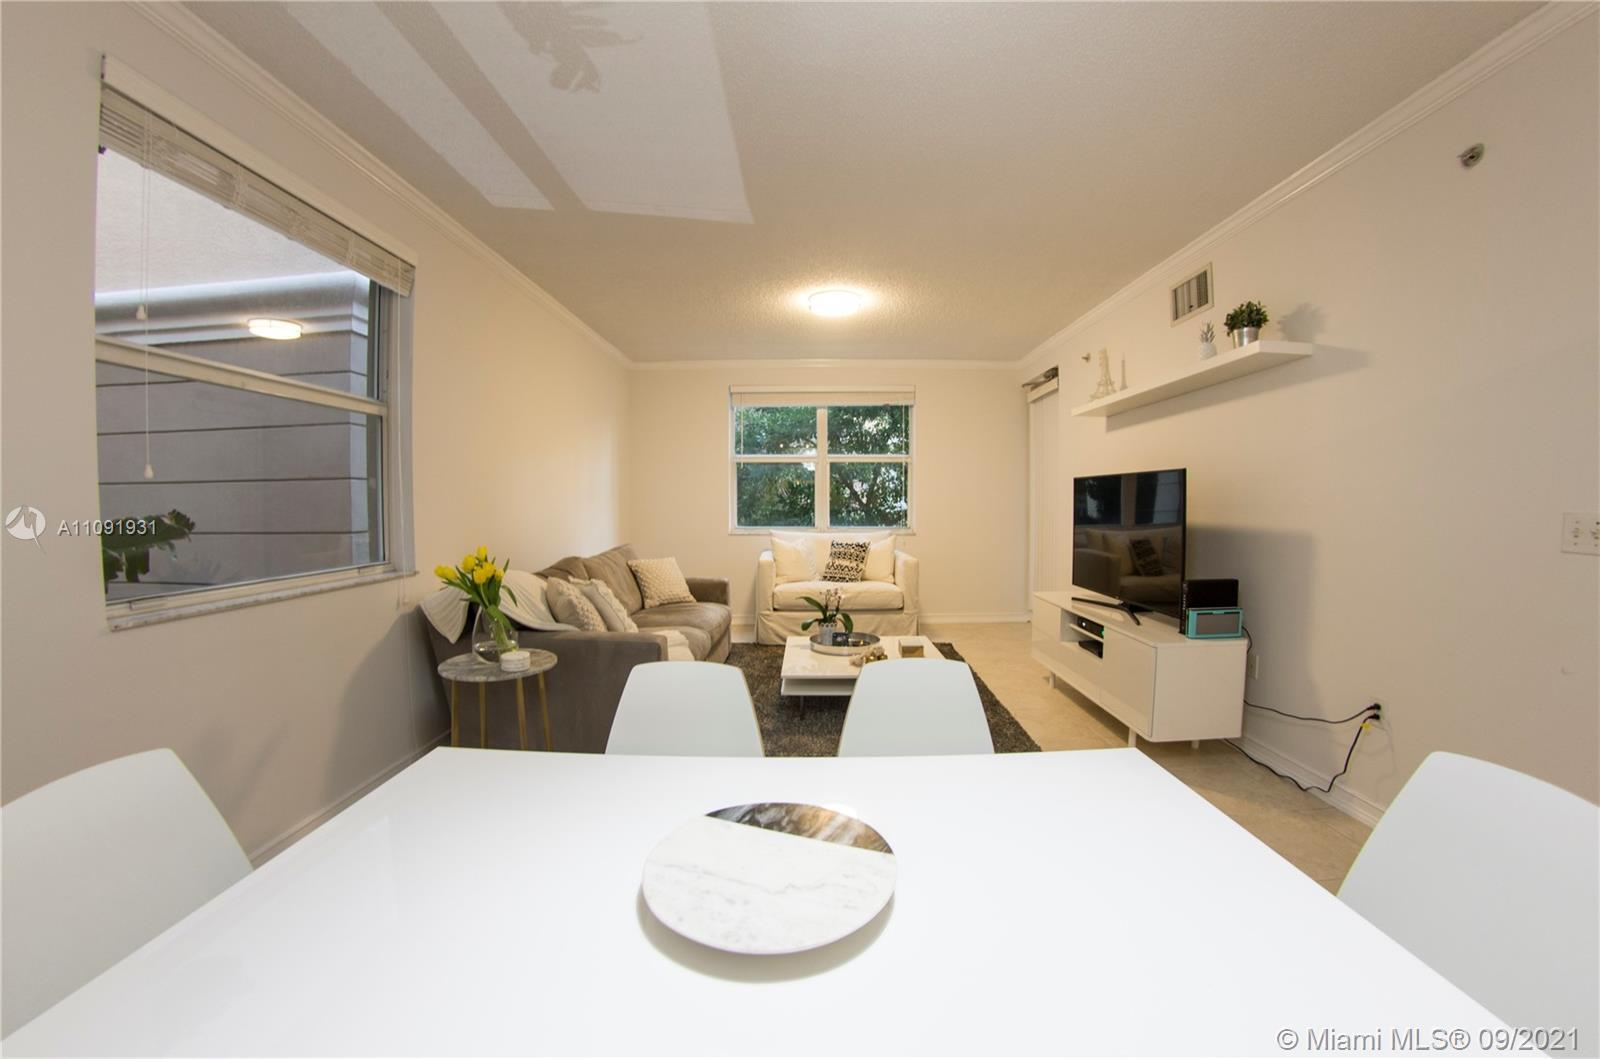 COZY 2 BEDROOM FLORENZA MODEL. UPGRADED WITH TILE FLOORS THROUGHOUT. WASHER AND DRYER INSIDE THE UNI